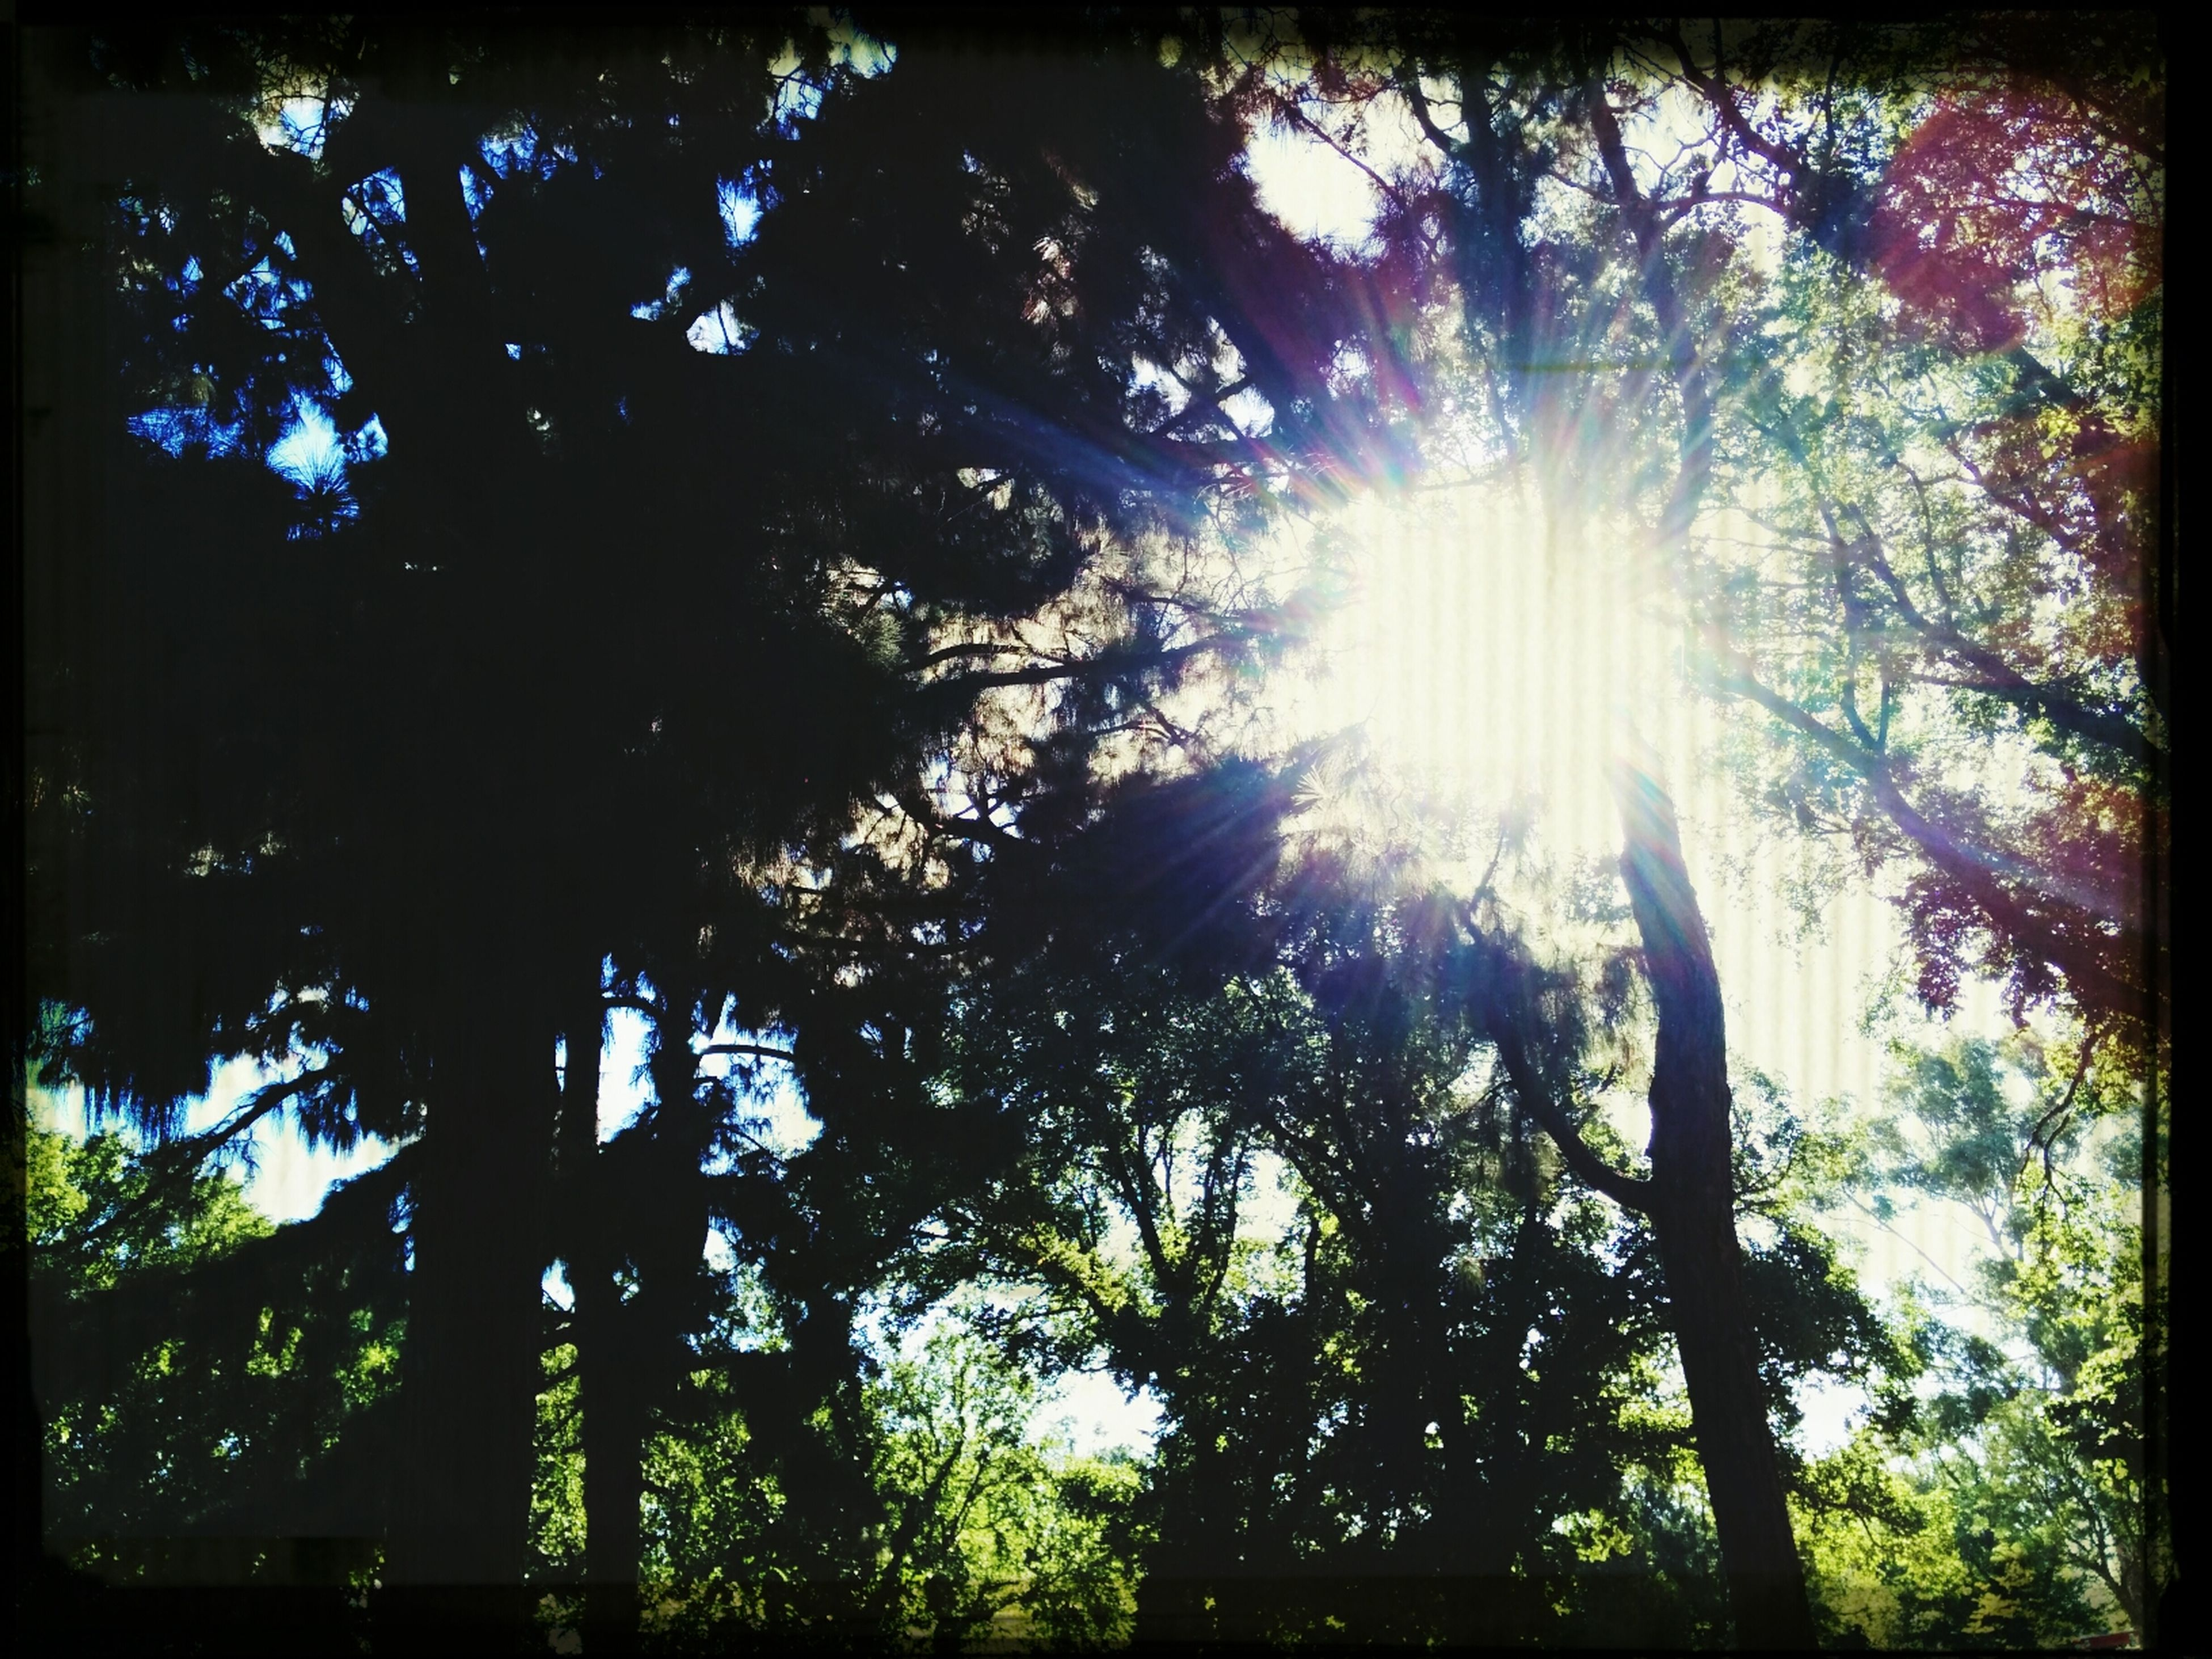 tree, sun, low angle view, growth, sunbeam, sunlight, tranquility, nature, beauty in nature, lens flare, tree trunk, transfer print, branch, sky, tranquil scene, scenics, auto post production filter, back lit, sunny, day